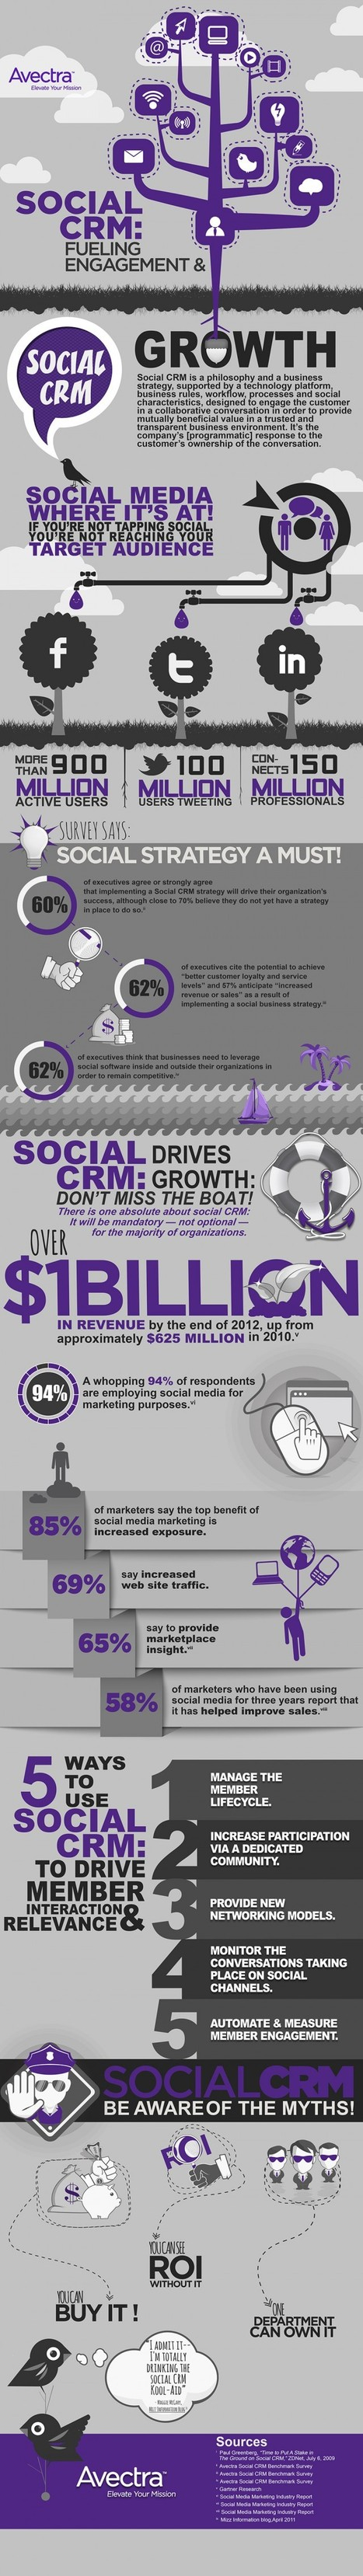 Infographic: Social CRM Fuels Engagement and Growth | Beyond Marketing | Scoop.it